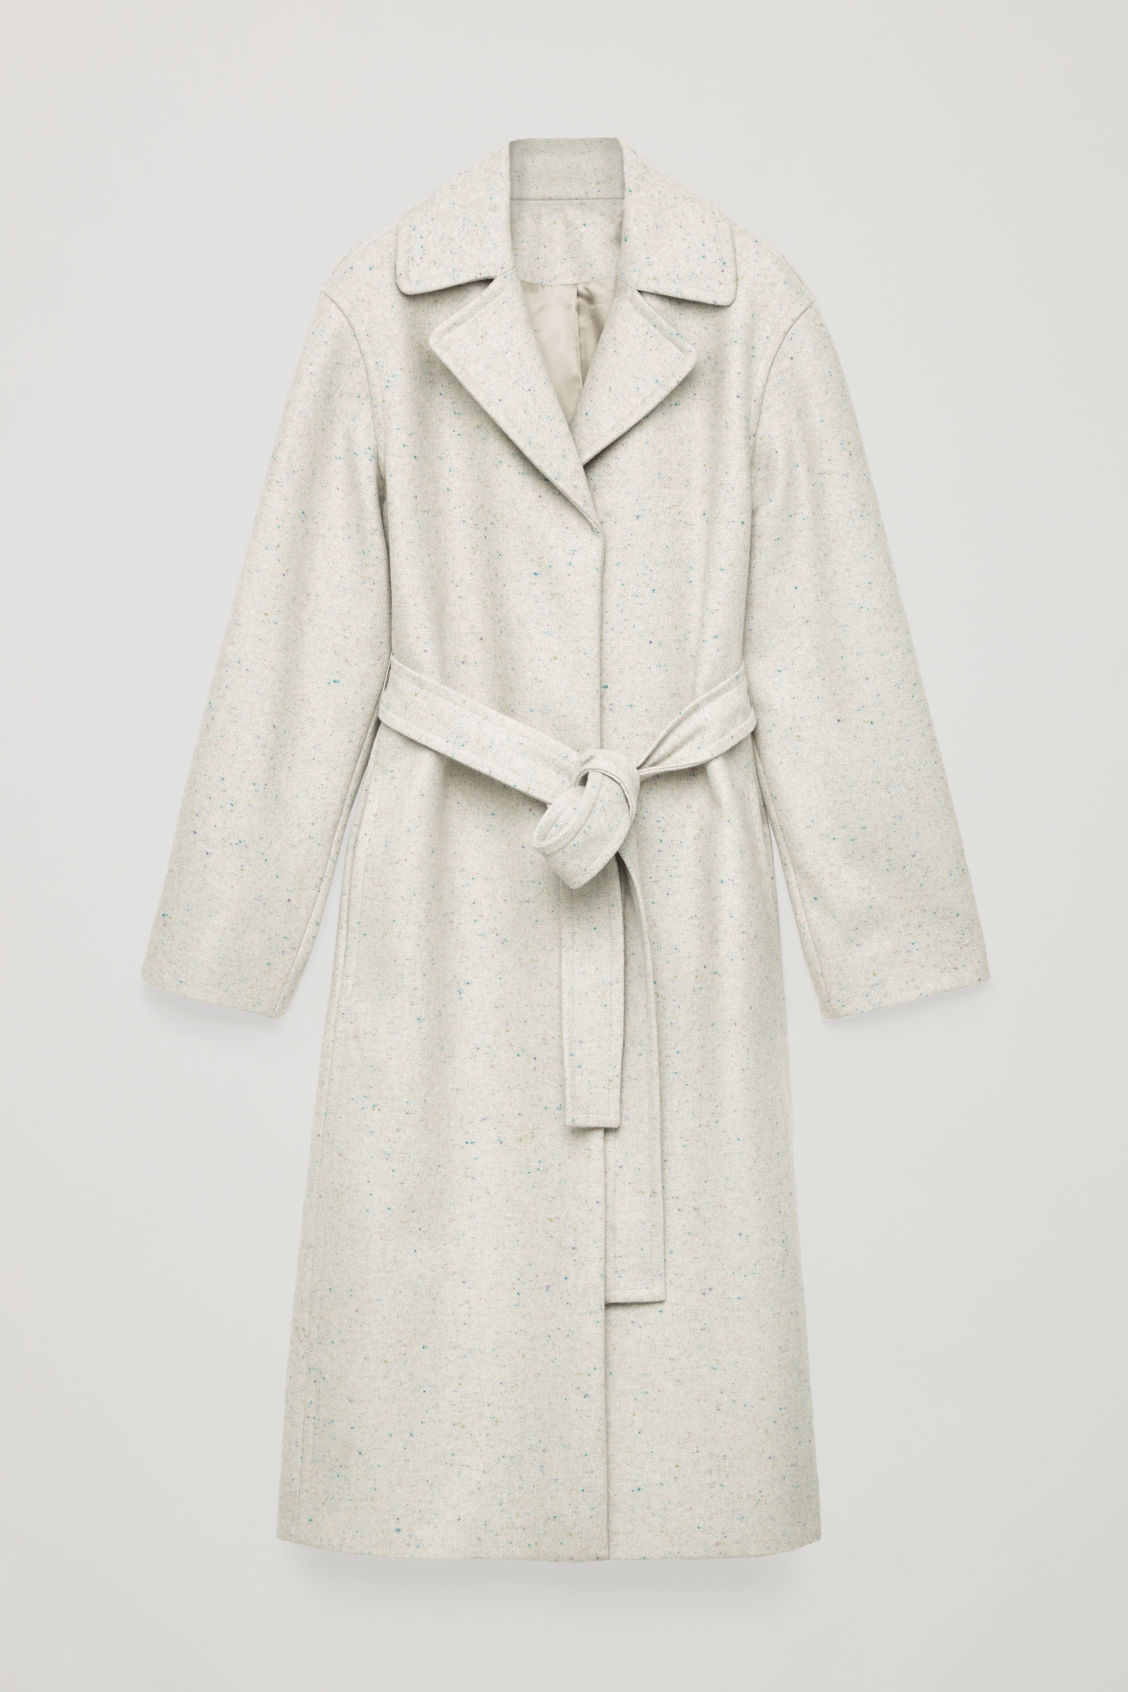 Speckled Wool Trench Coat in Beige from COS